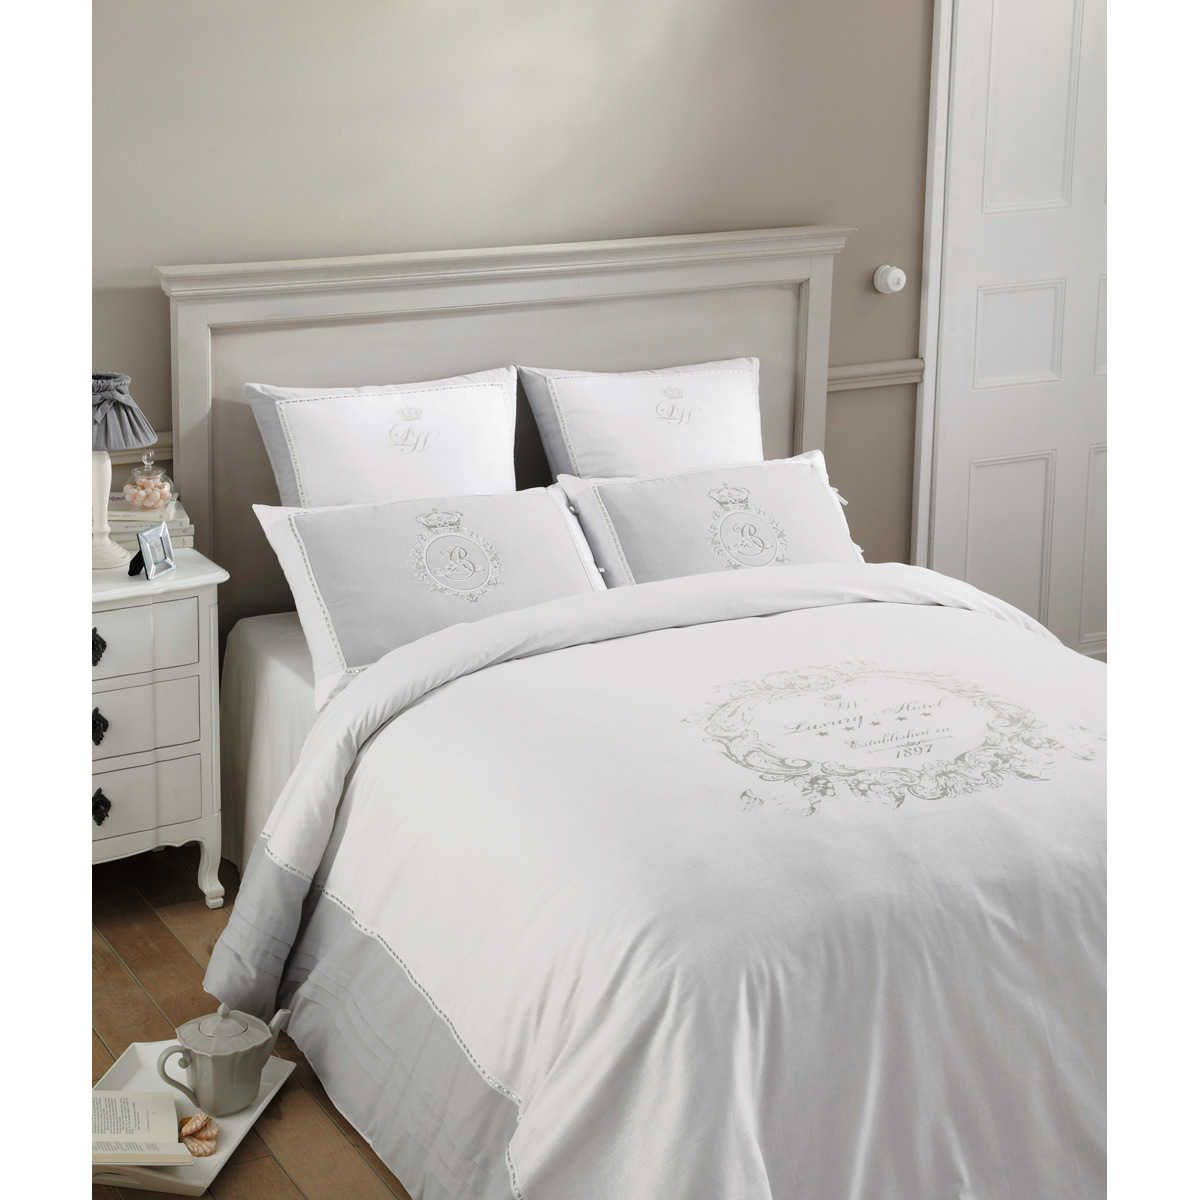 parure de lit 220 x 240 cm en coton blanche luxury. Black Bedroom Furniture Sets. Home Design Ideas